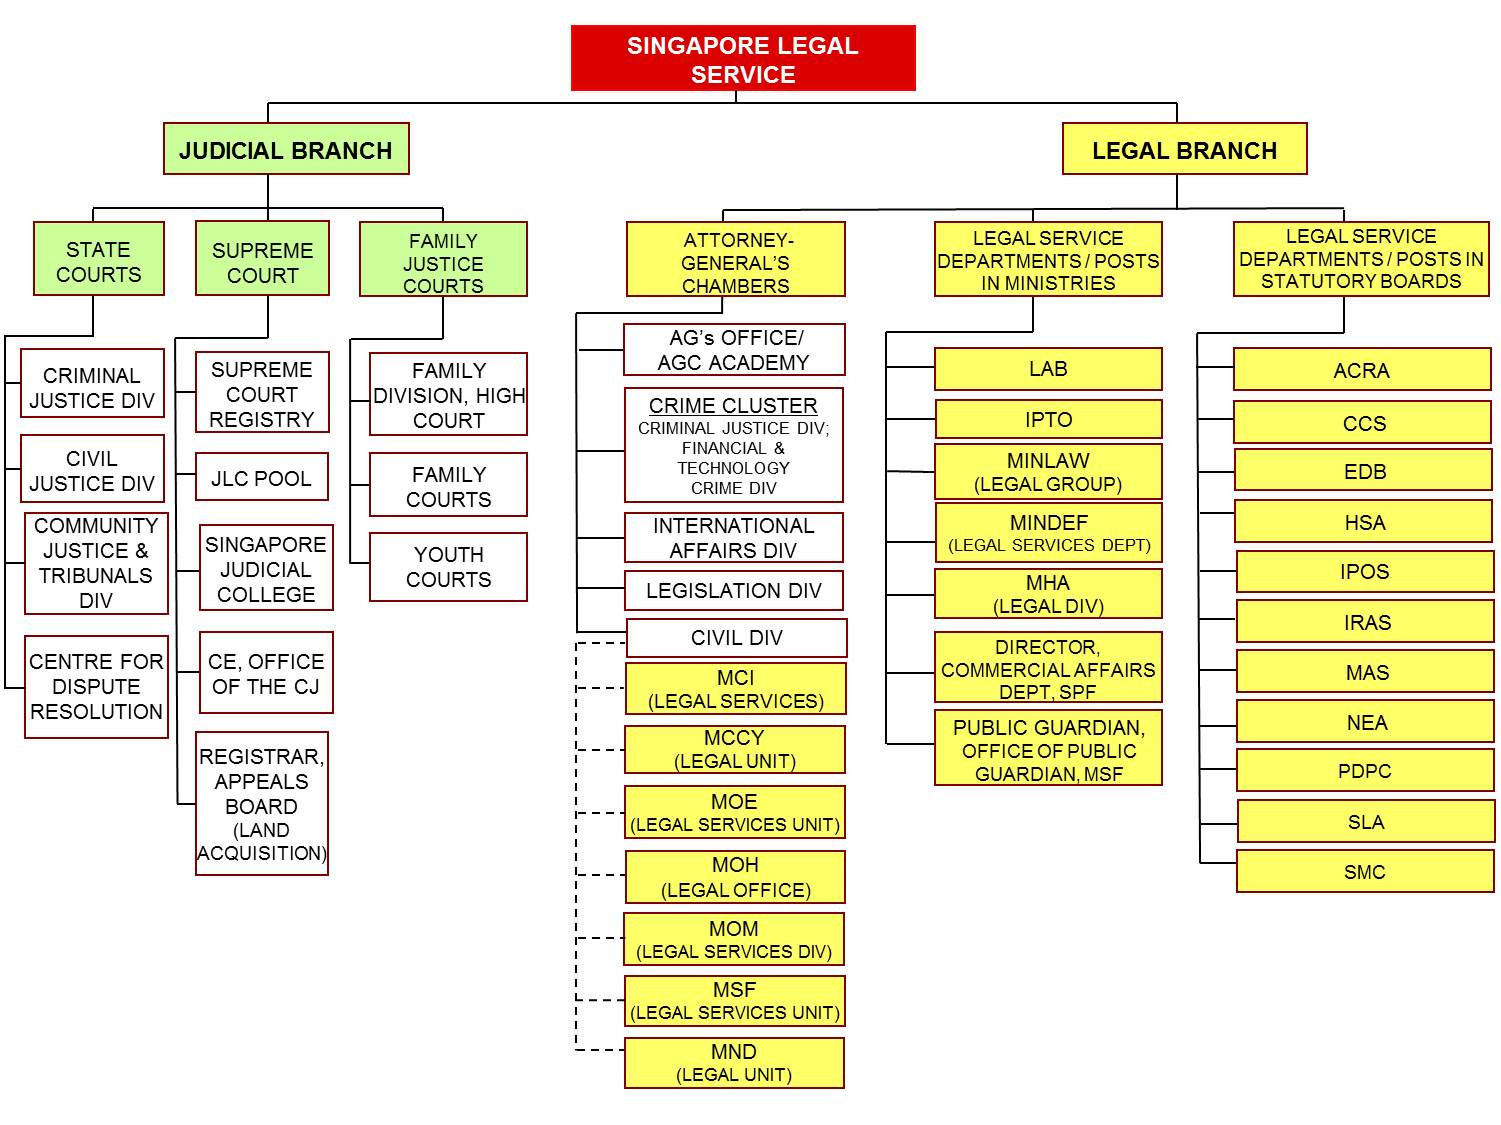 judicial branch court system diagram bass neck structure of the singapore legal service